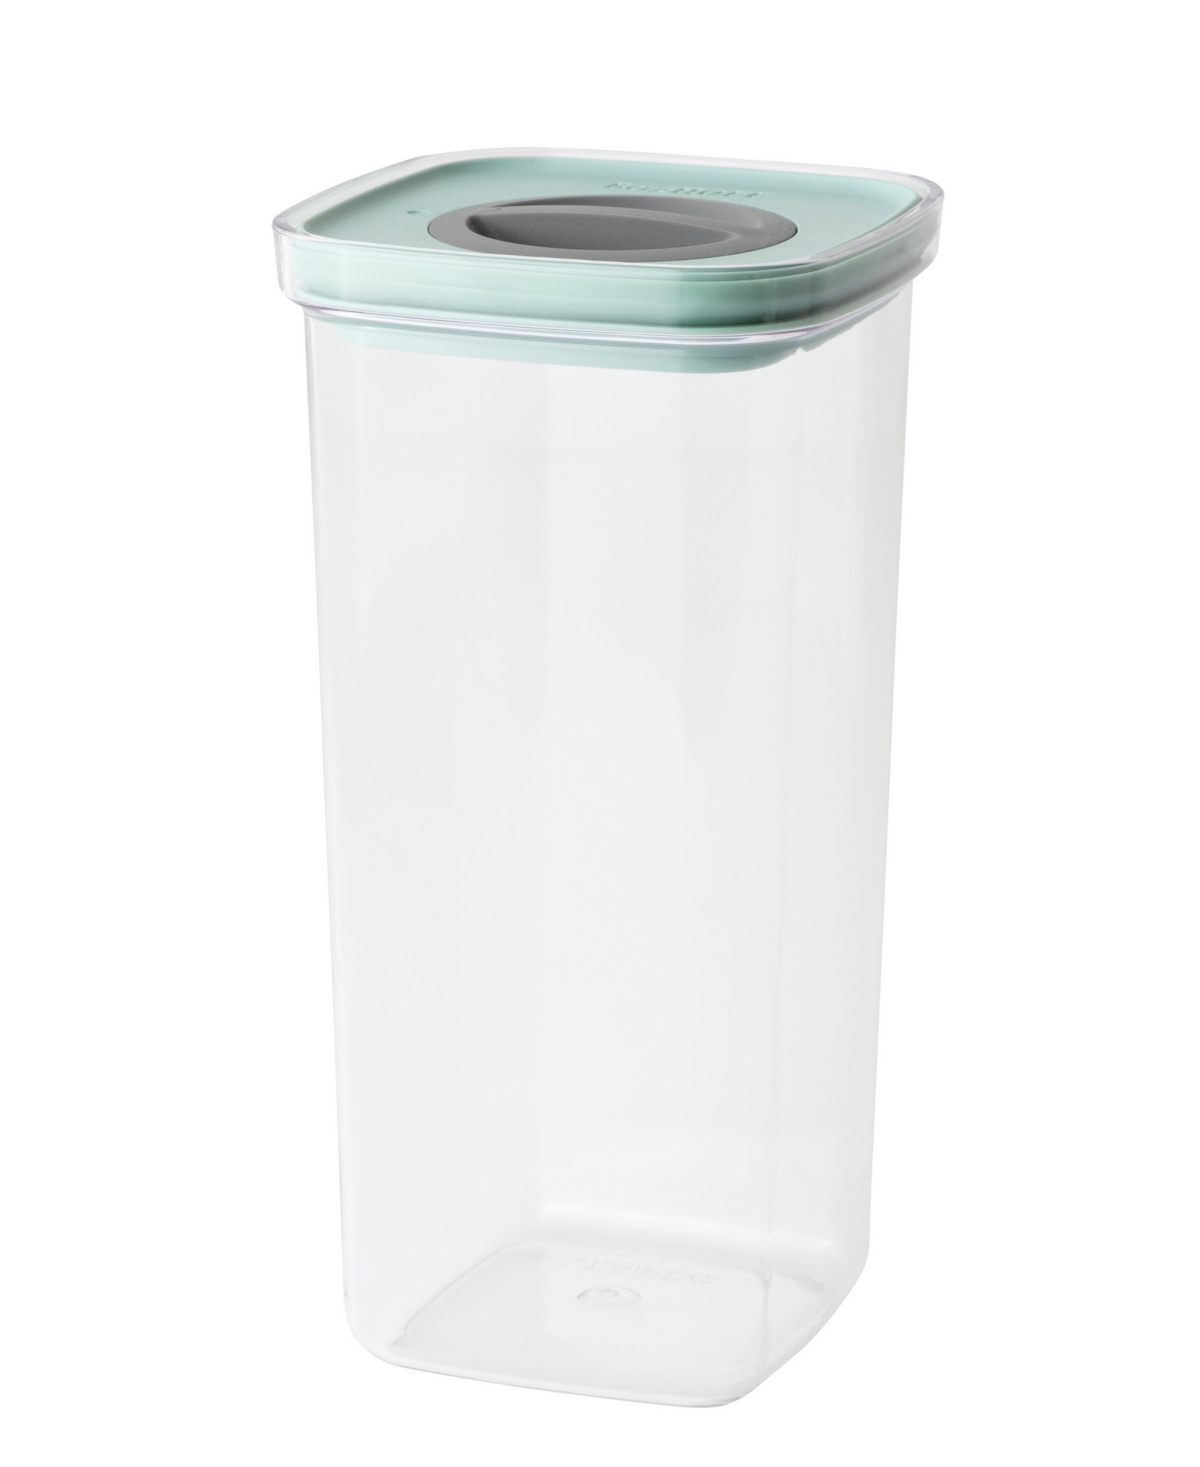 BergHOFF Leo Collection 1.7-Qt. Smart Seal Food Container